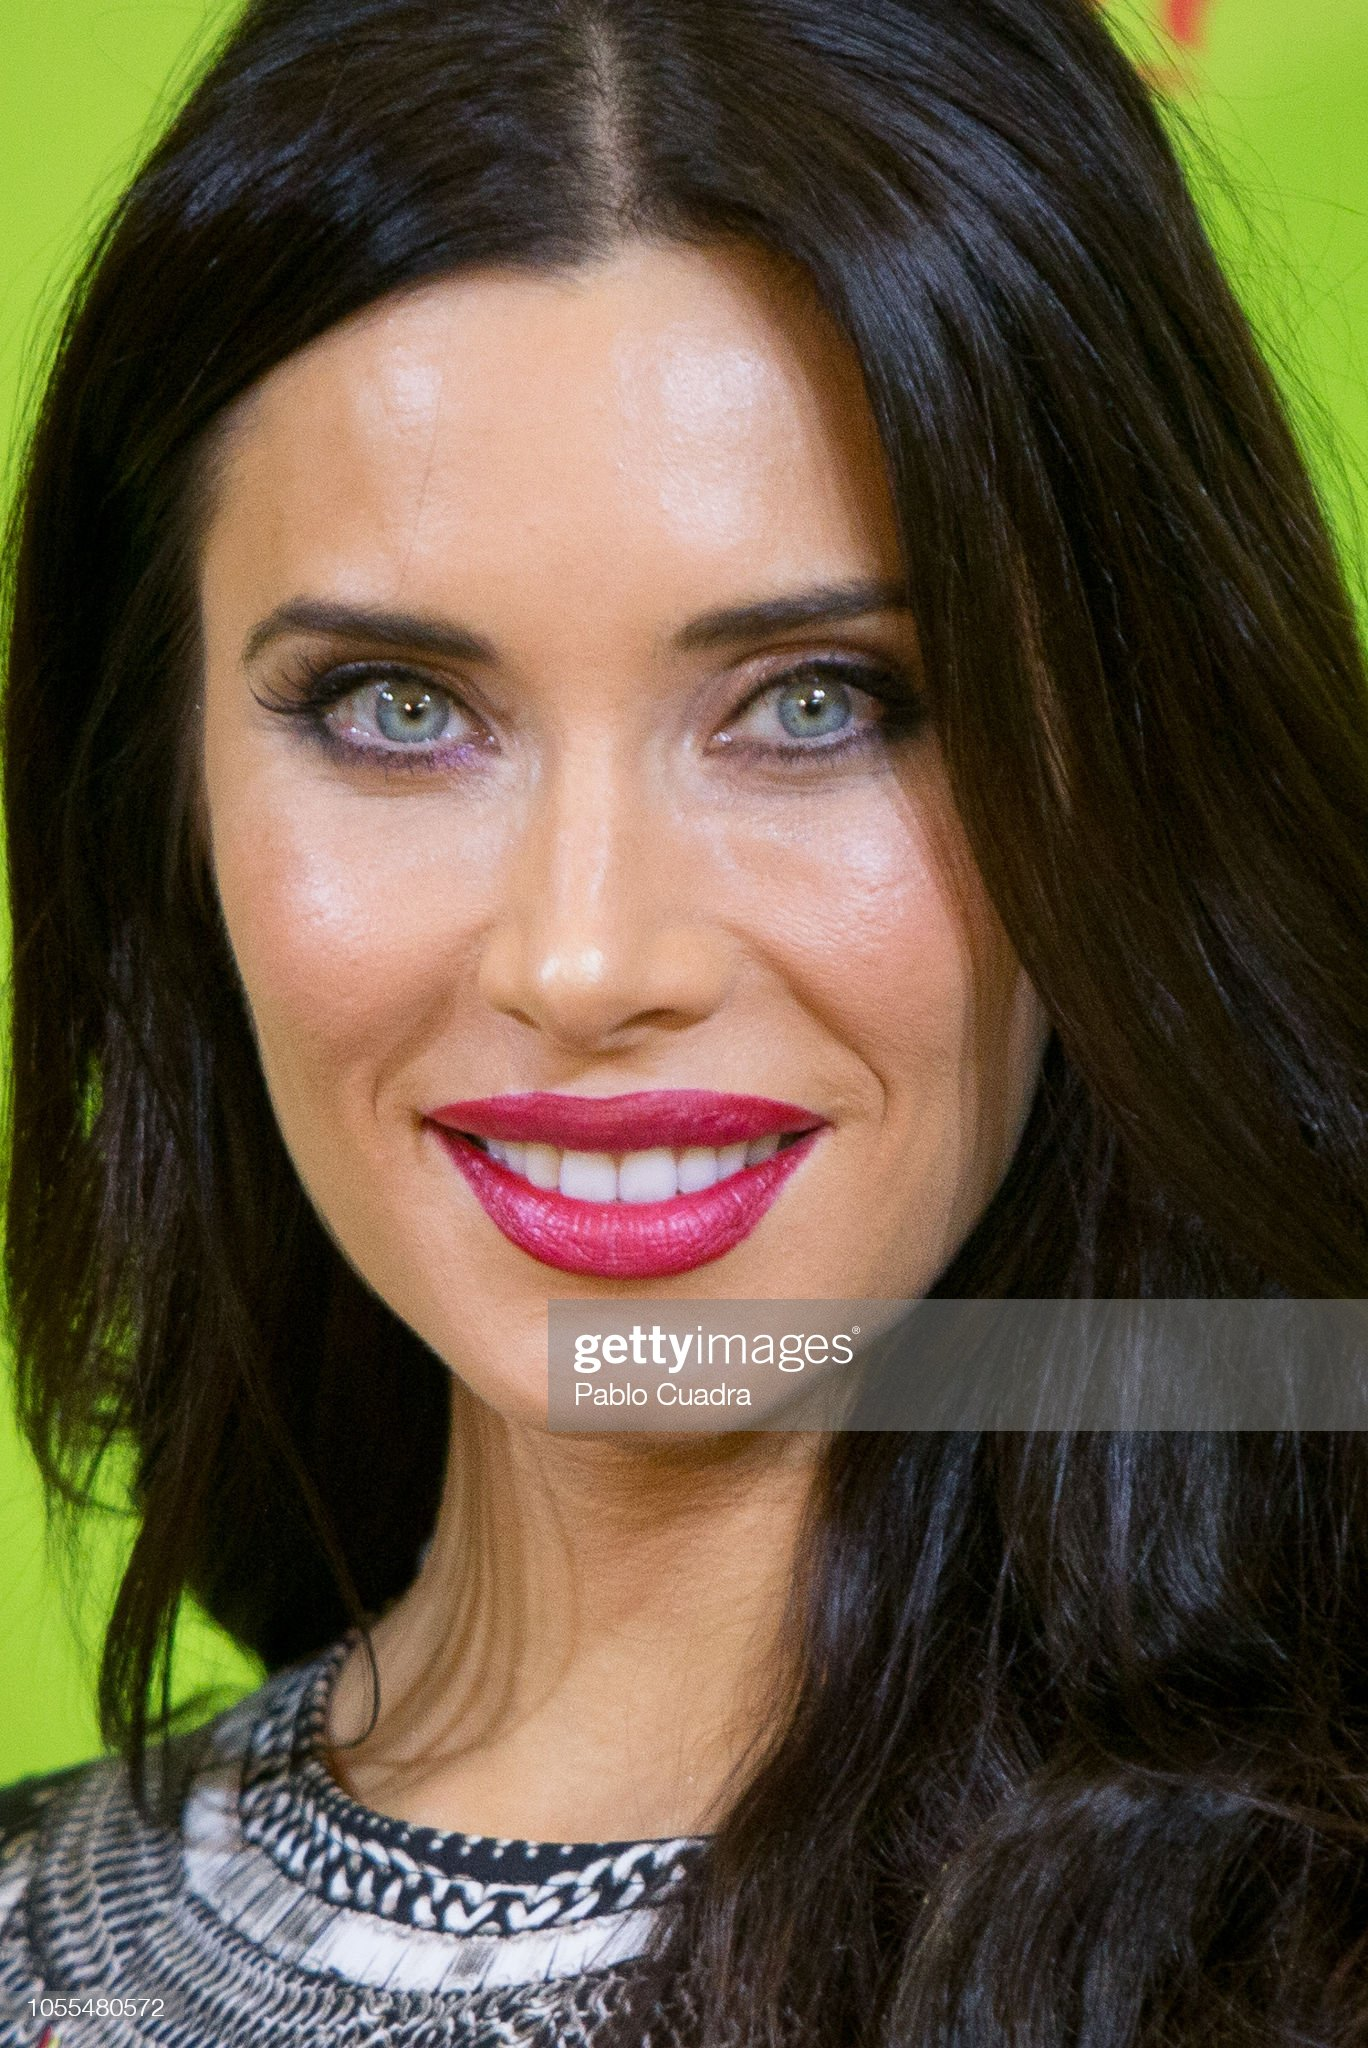 Ojos azules - personas famosas con los ojos de color AZUL Pilar-rubio-attends-a-kiwis-zespri-event-on-october-30-2018-in-madrid-picture-id1055480572?s=2048x2048